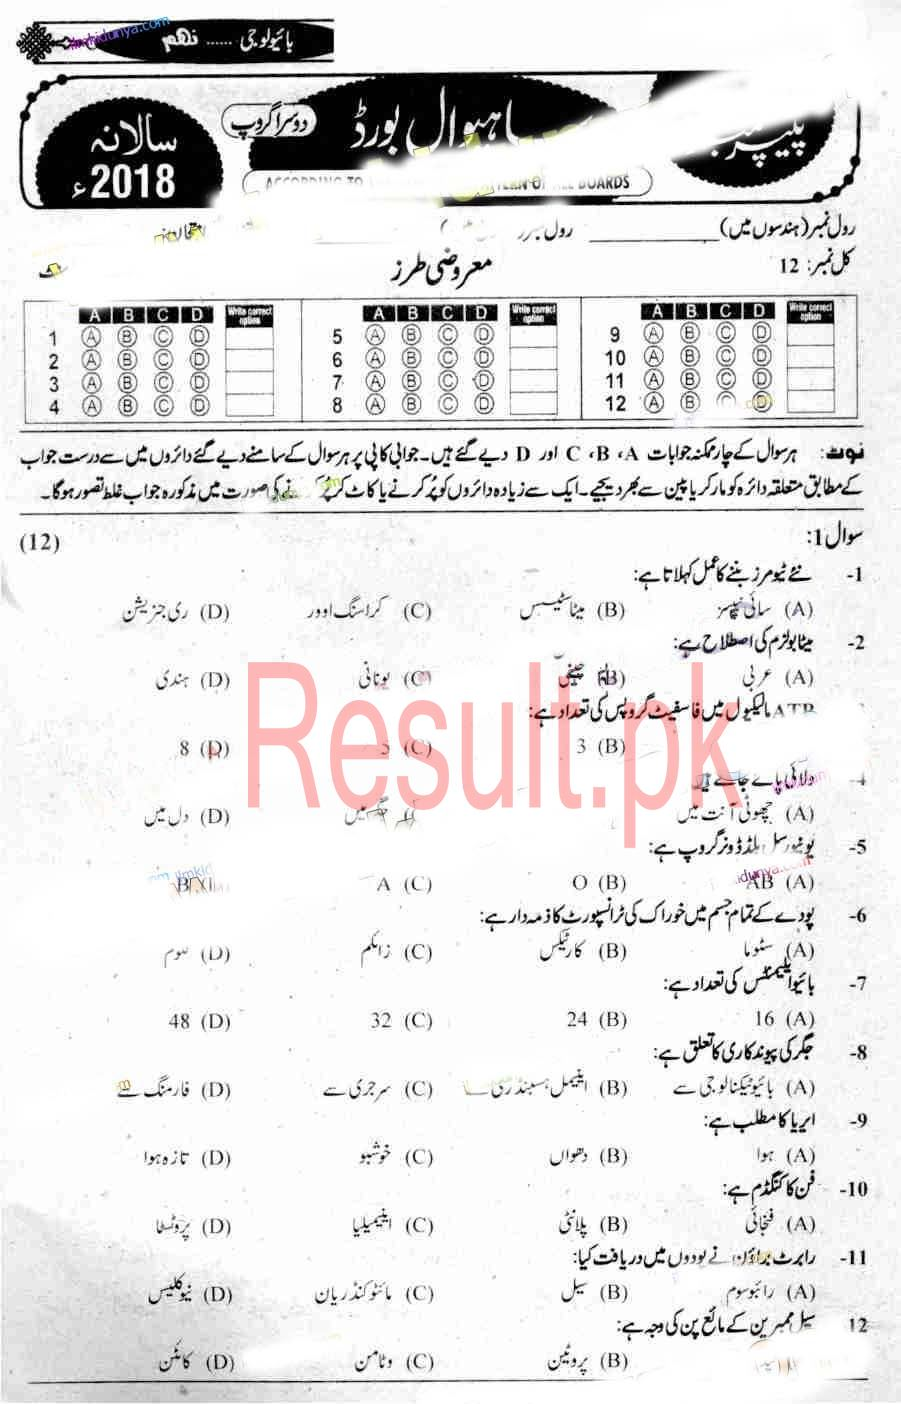 BISE Sahiwal Board Past Papers 2019 Matric, SSC Part 1 & 2, 9th